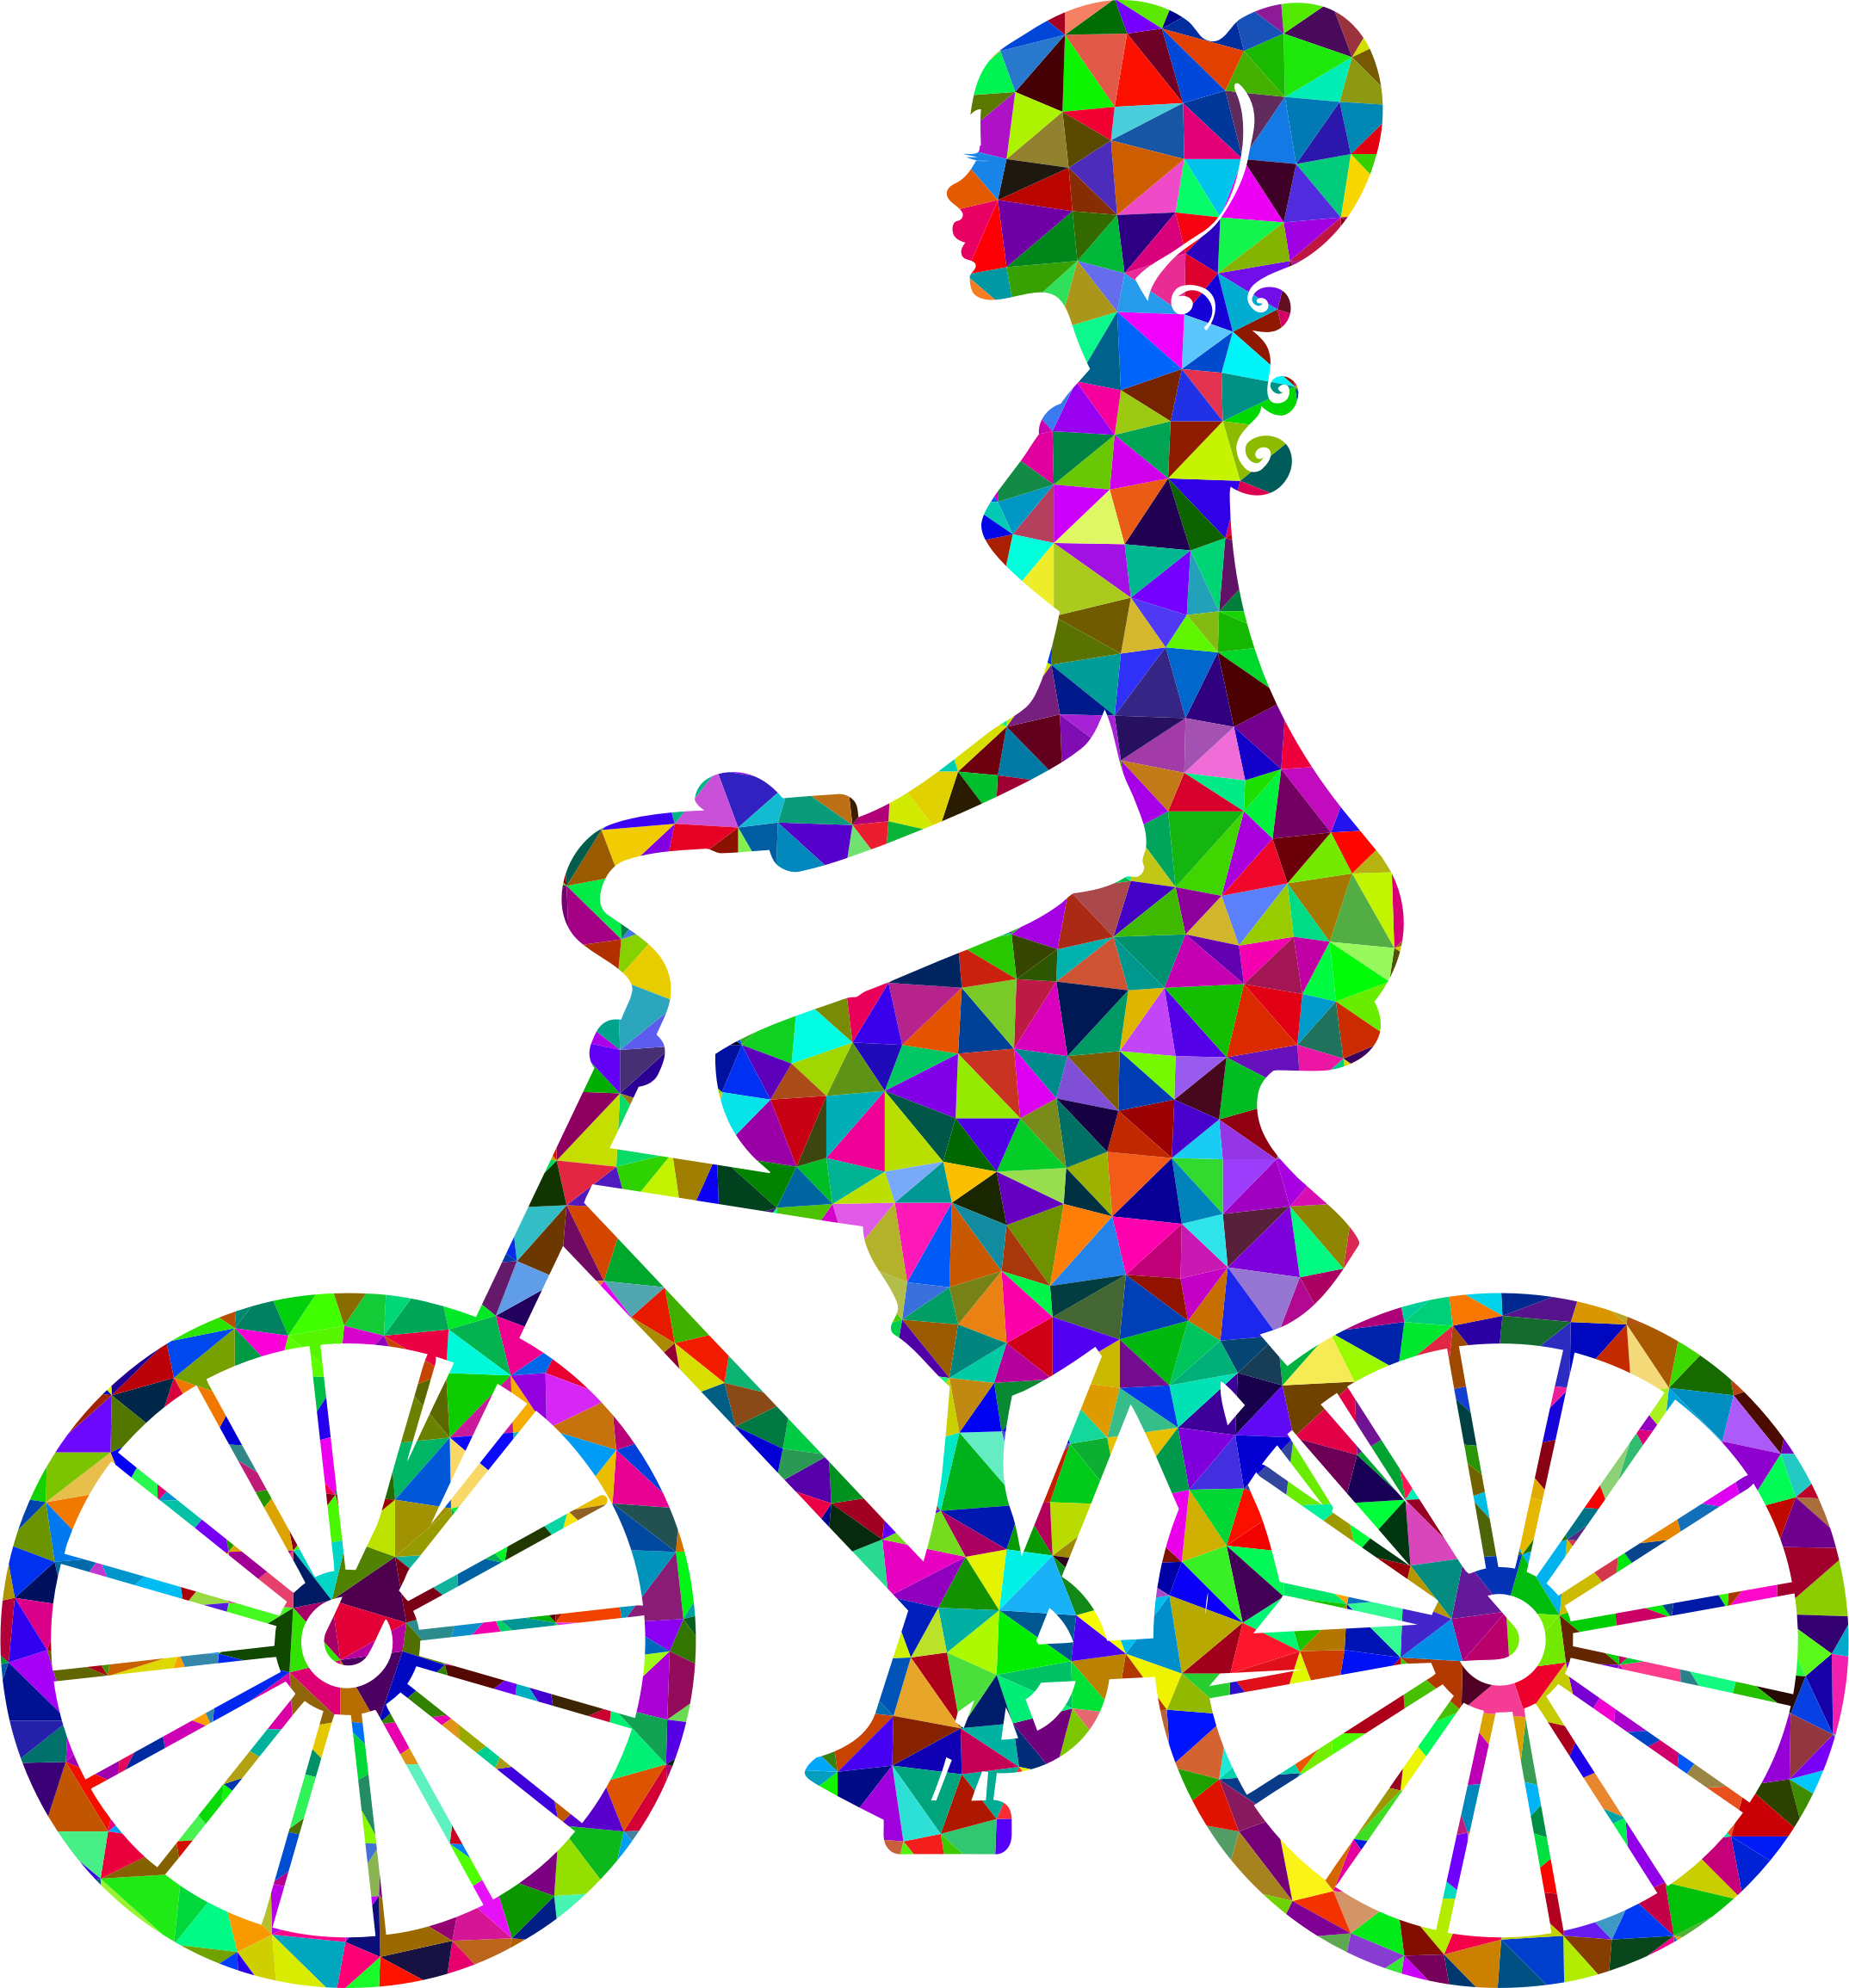 Low Poly Prismatic Girl On Bike by GDJ